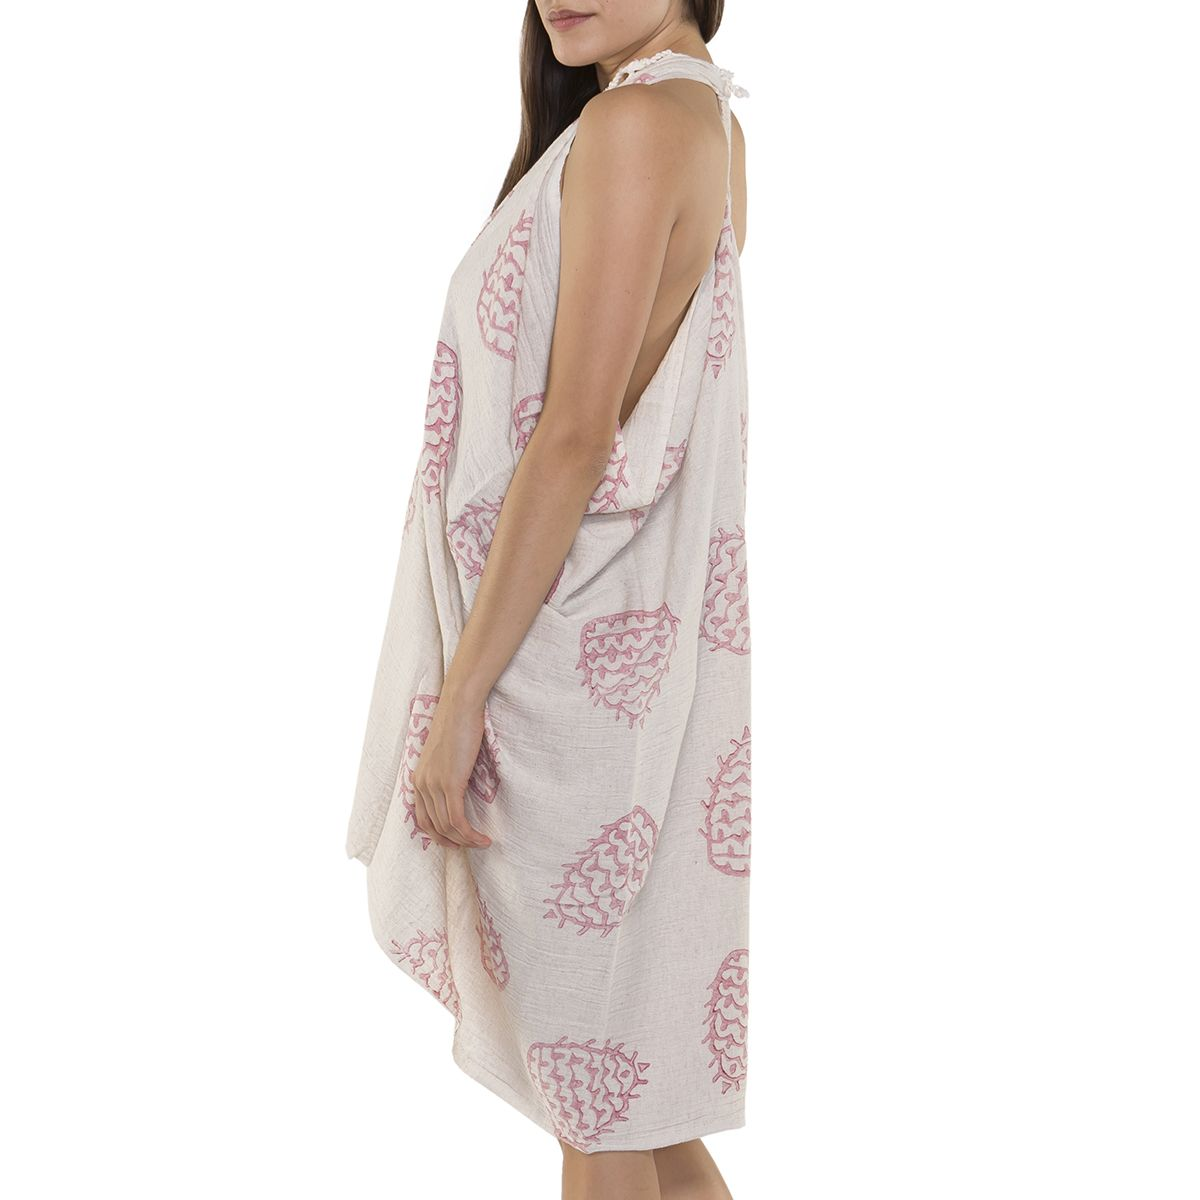 Pareo - Hand Printed 05 / Dusty Rose